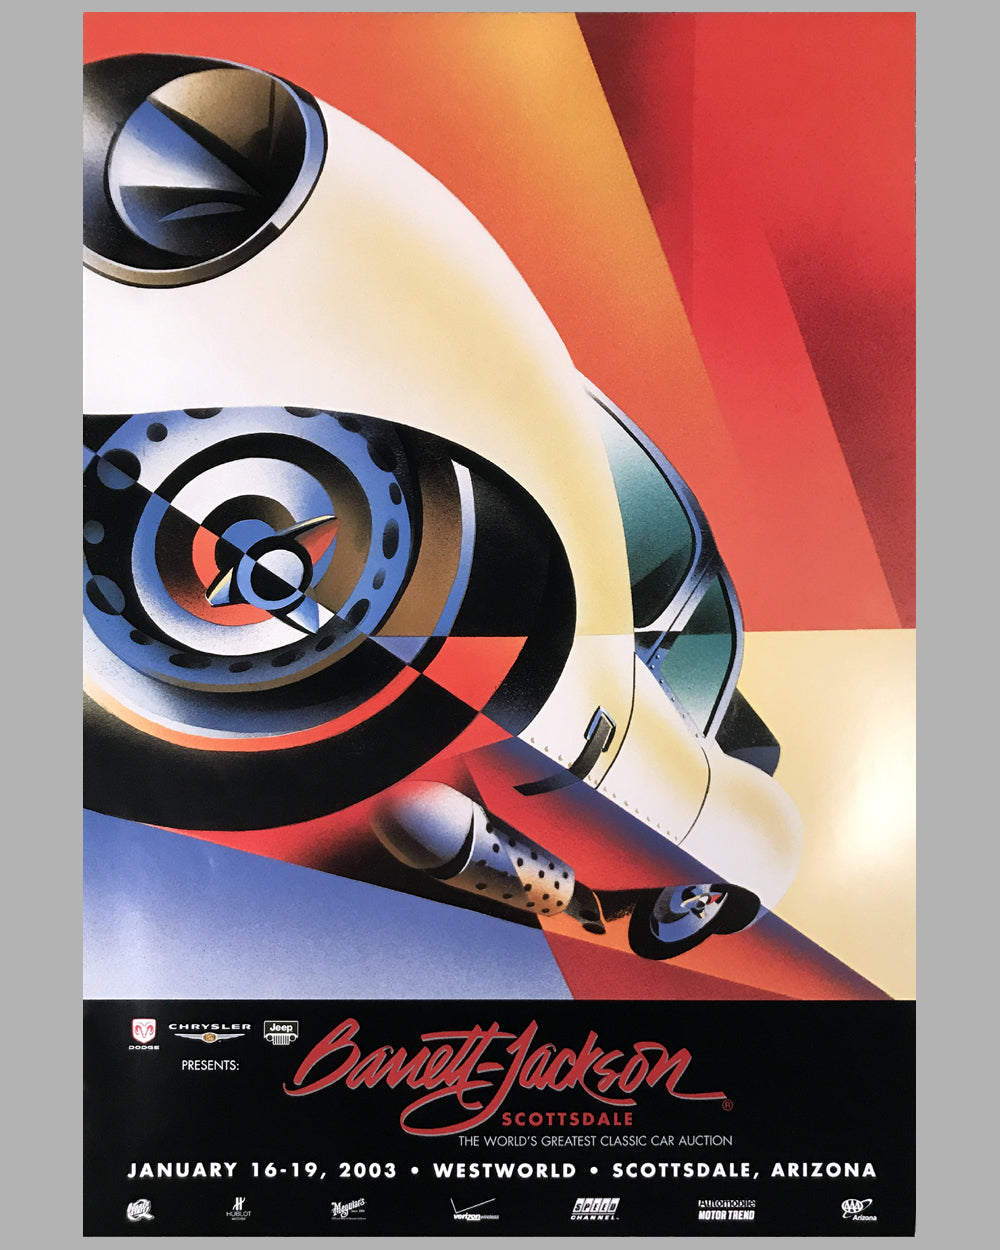 Barrett Jackson Scottsdale auction poster by Alain Levesque